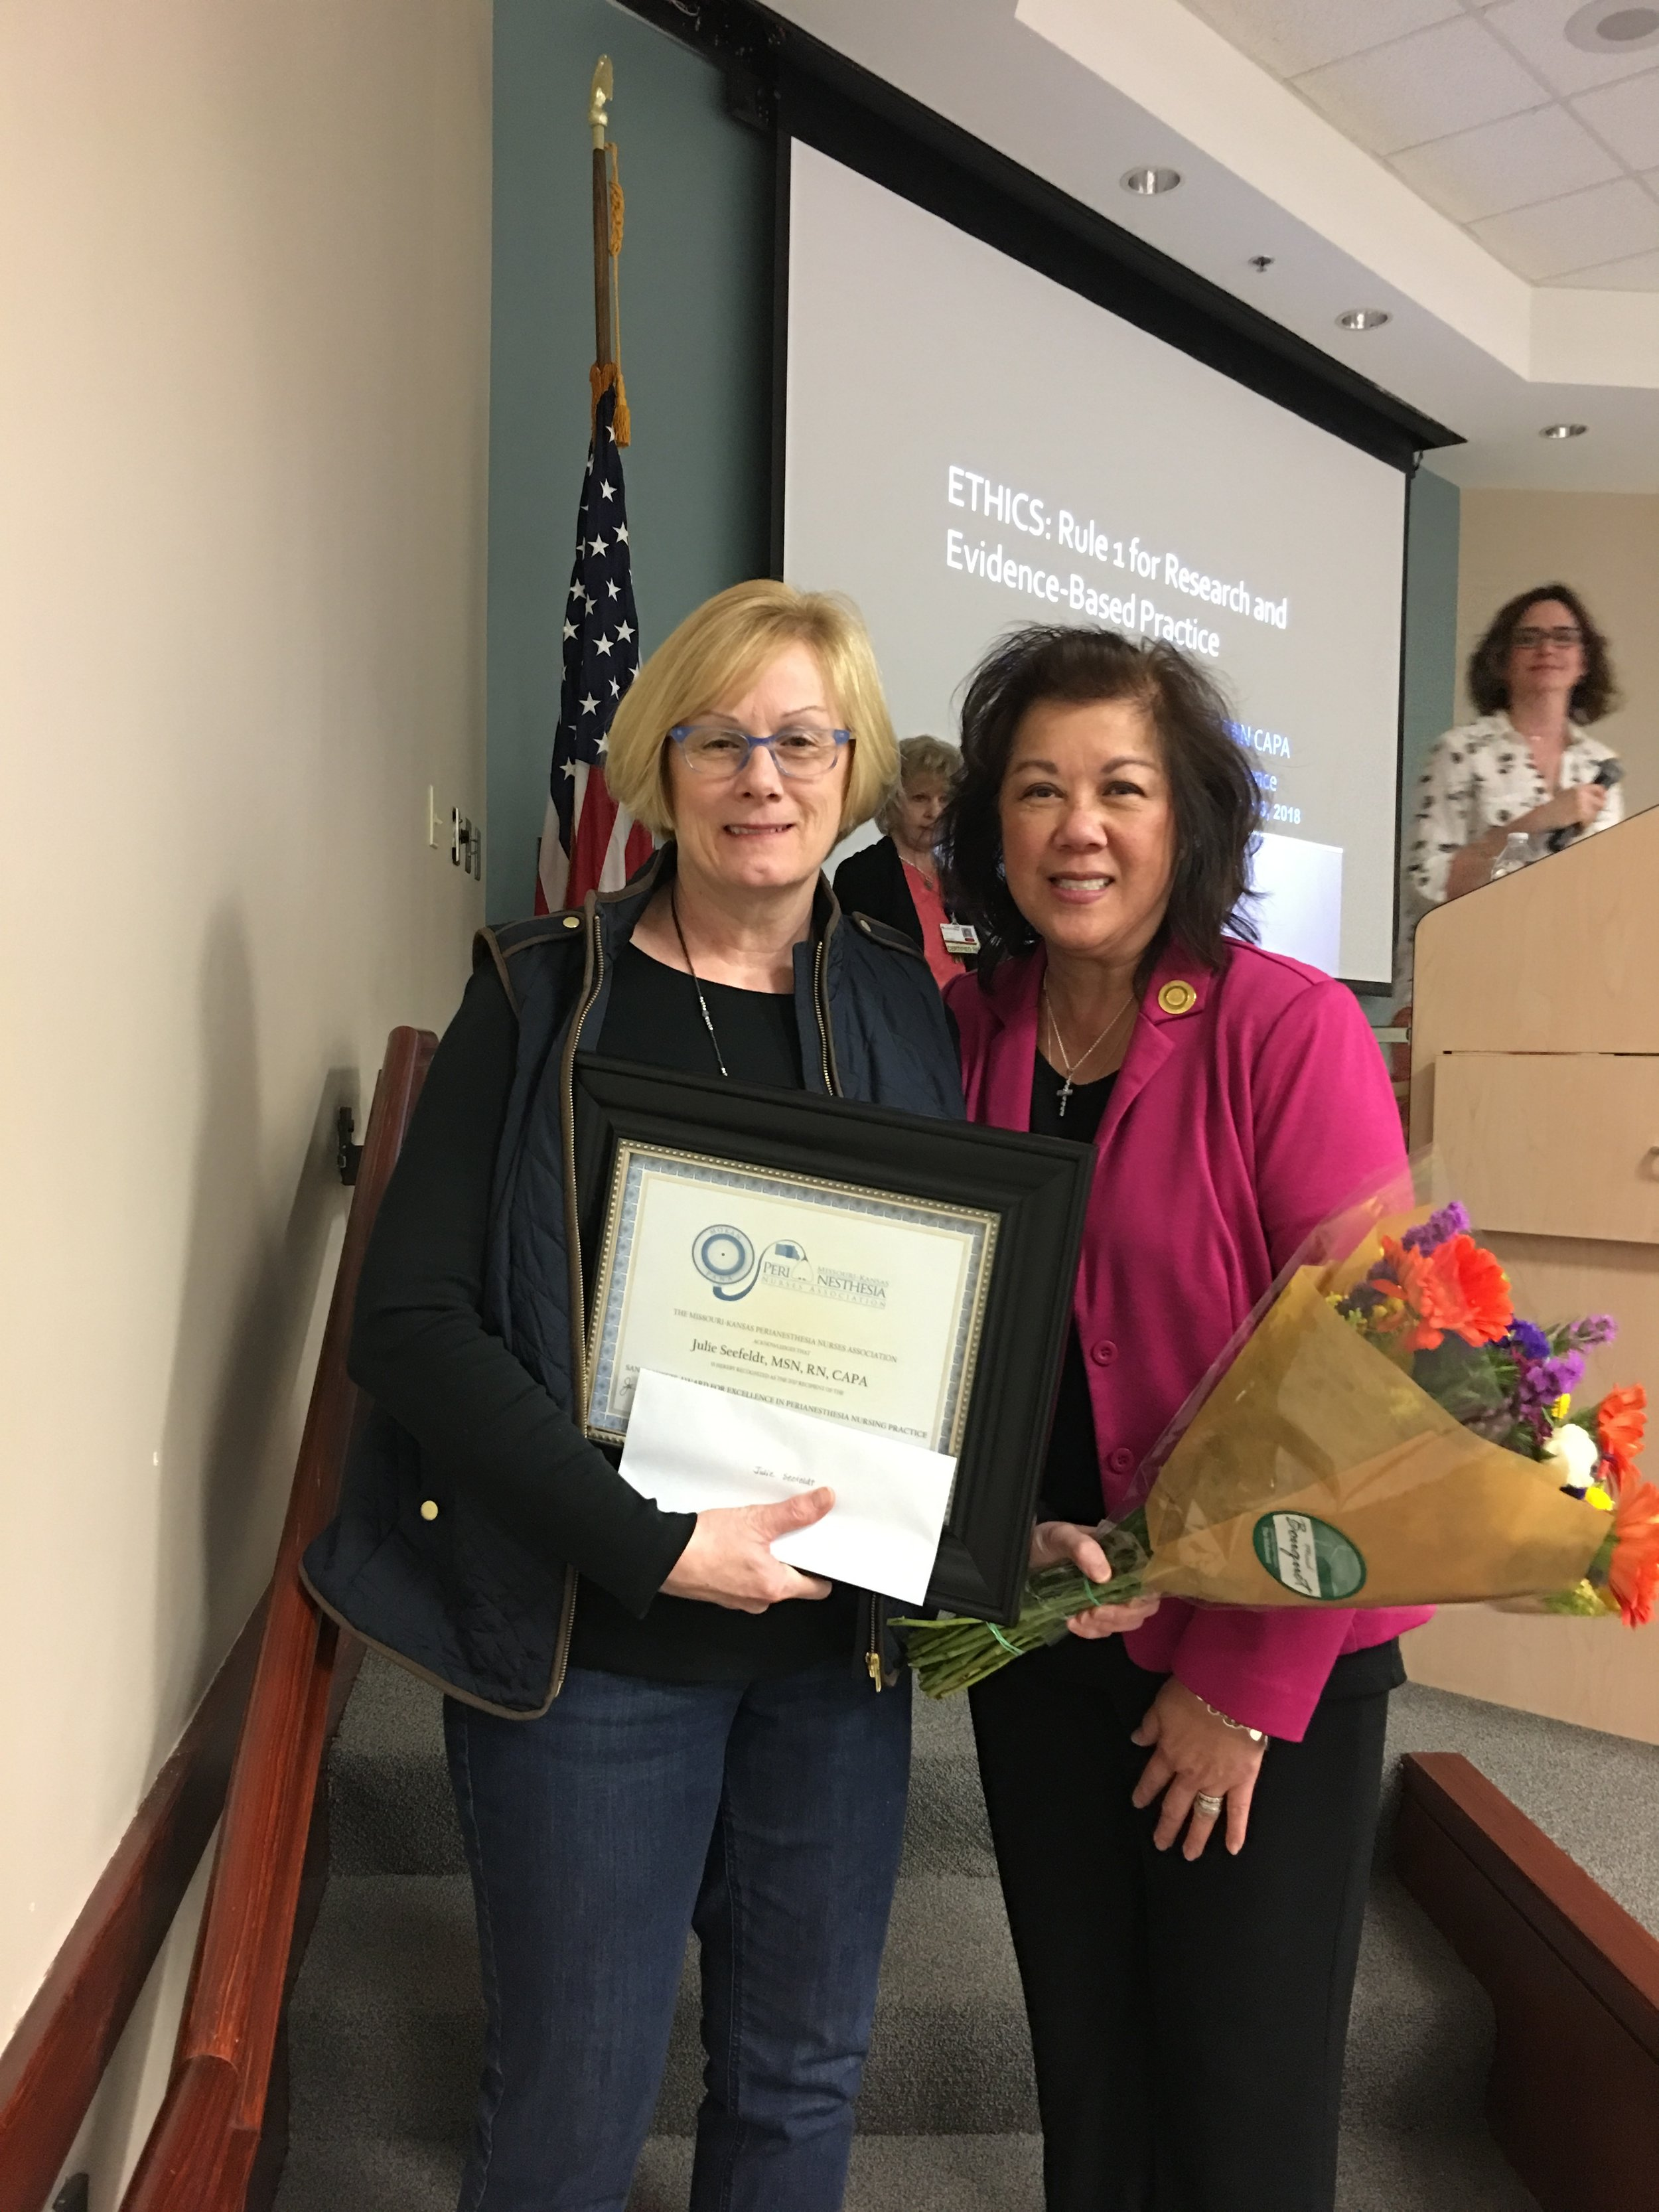 Julie Seefeldt, MSN, CAPA  2017 Excellence in Clinical Practice Award